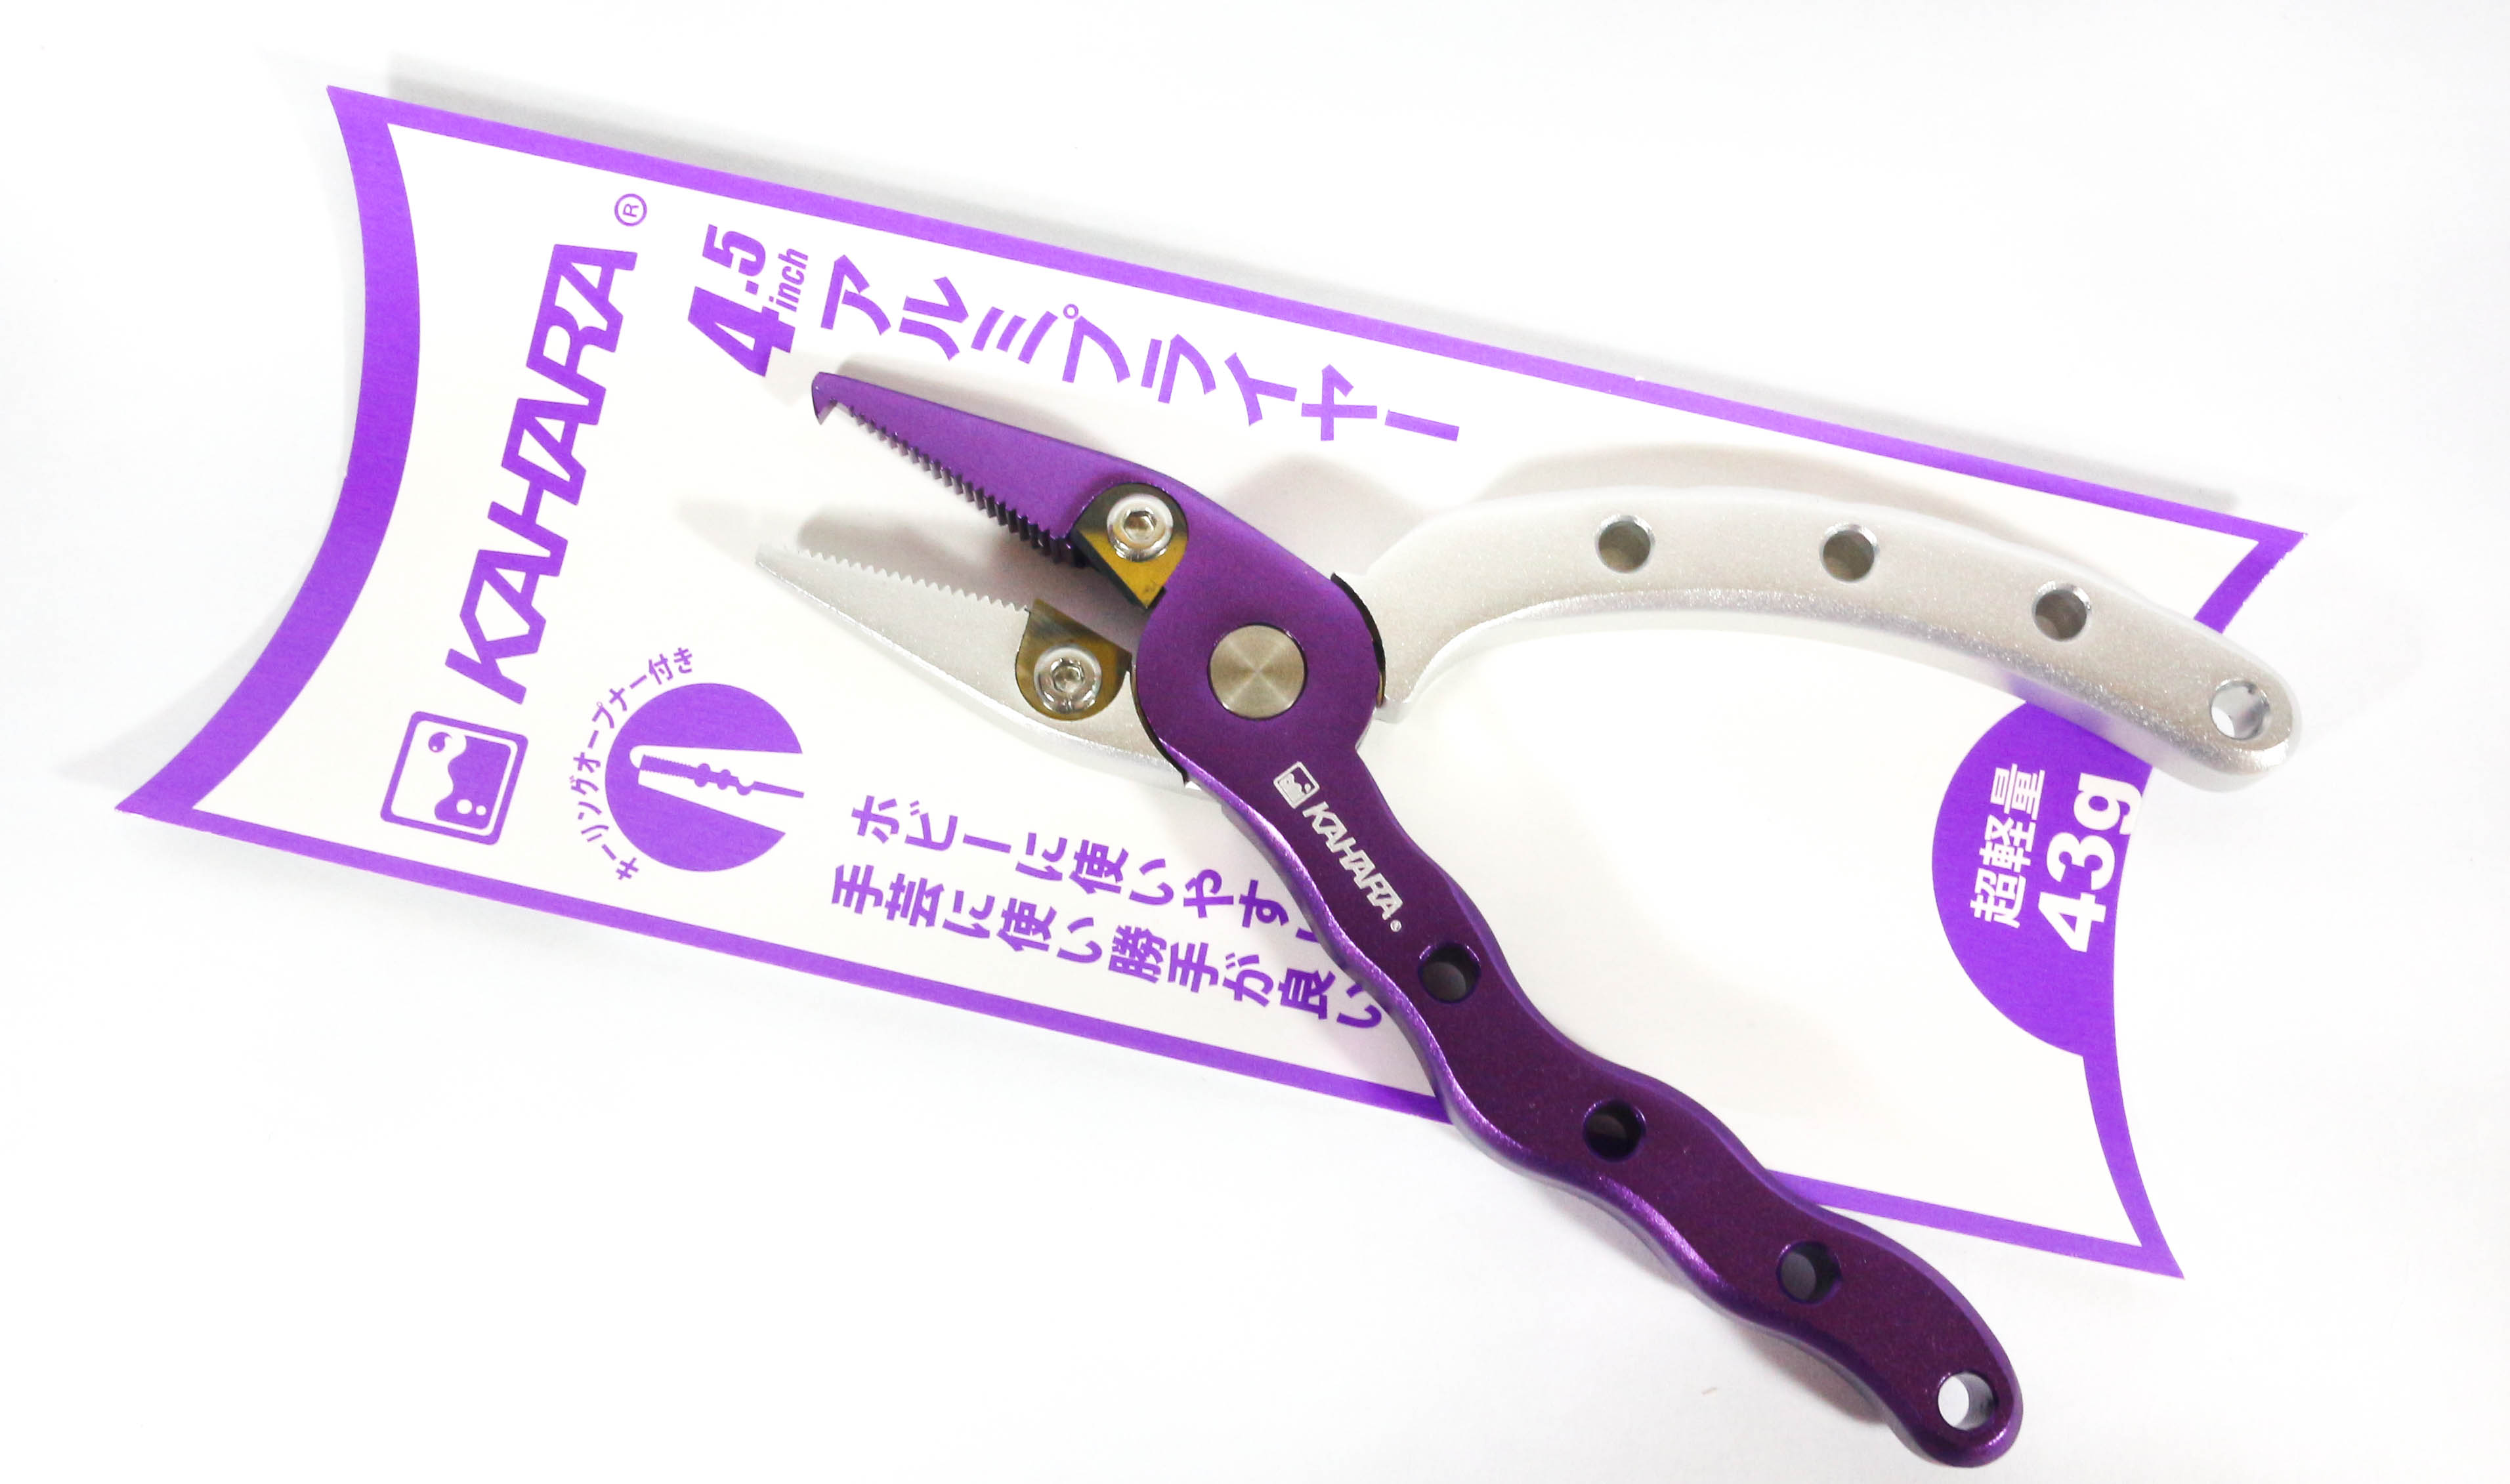 Kahara Aluminum Split Ring Pliers Light Game 43 Grams 4.5 Inch Grape (7453)